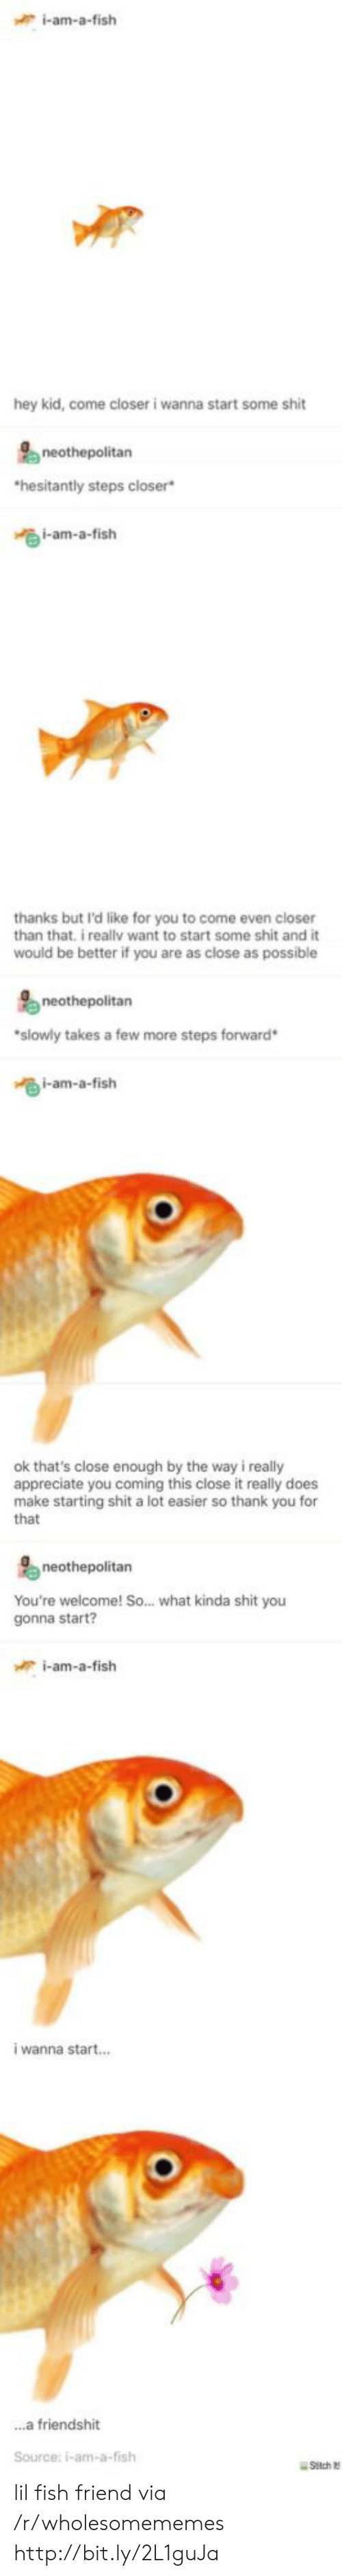 Like For: i-am-a-fish  hey kid, come closer i wanna start some shit  hesitantly steps closer  i-am-a-fish  thanks but I'd like for you to come even closer  than that. i reallv want to start some shit and it  would be better if you are as close as possible  neothepolitan  slowly takes a few more steps forward  i-am-a-fish  ok that's close enough by the way i really  appreciate you coming this close it really does  make starting shit a lot easier so thank you for  that  neothepolitan  You're welcome! So... what kinda shit you  gonna start?  i-am-a-fish  i wanna start..  ...a friendshit  Source: i-am-a-fish lil fish friend via /r/wholesomememes http://bit.ly/2L1guJa